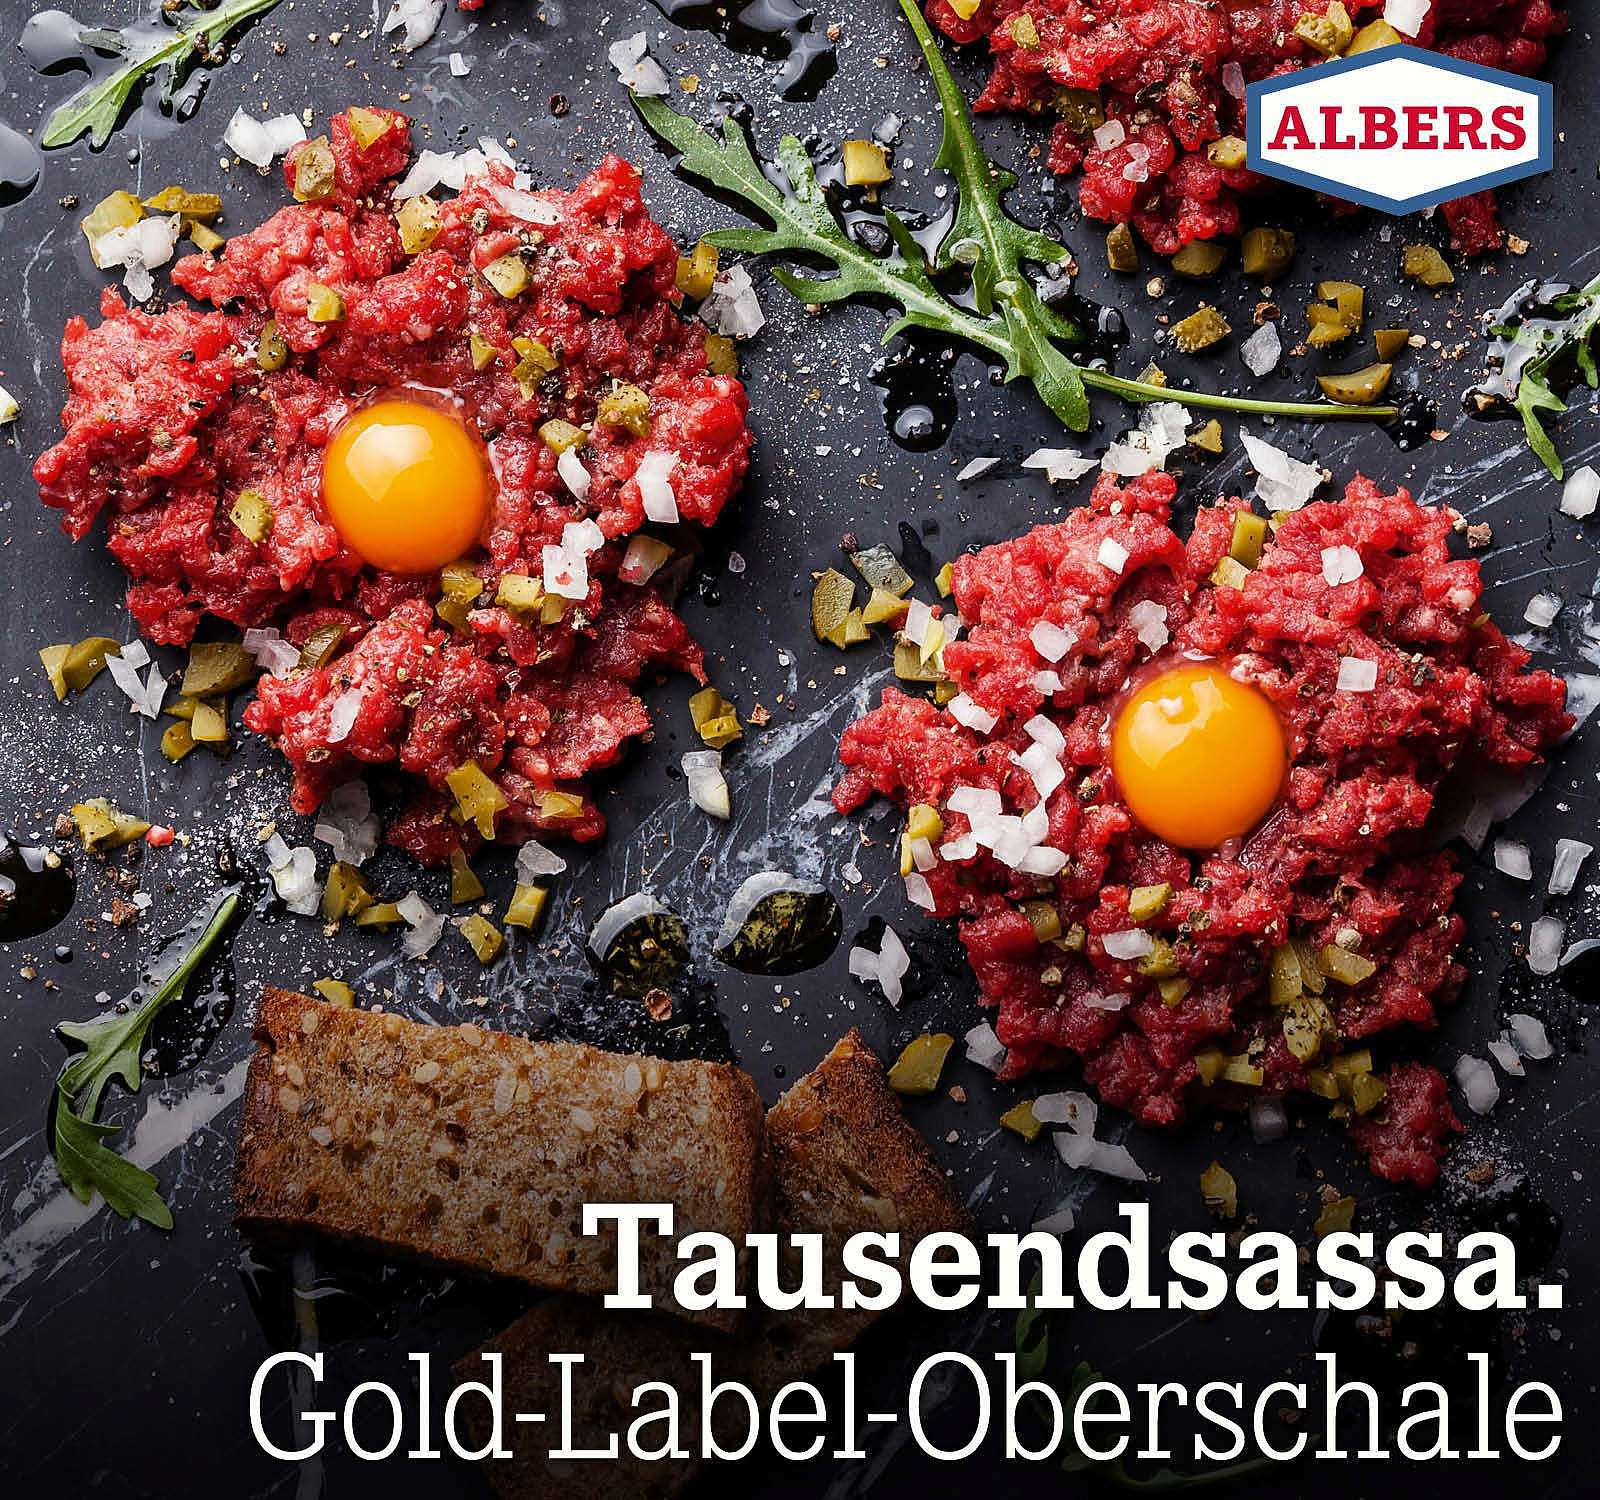 Tausendsassa. Gold-Label-Oberschale